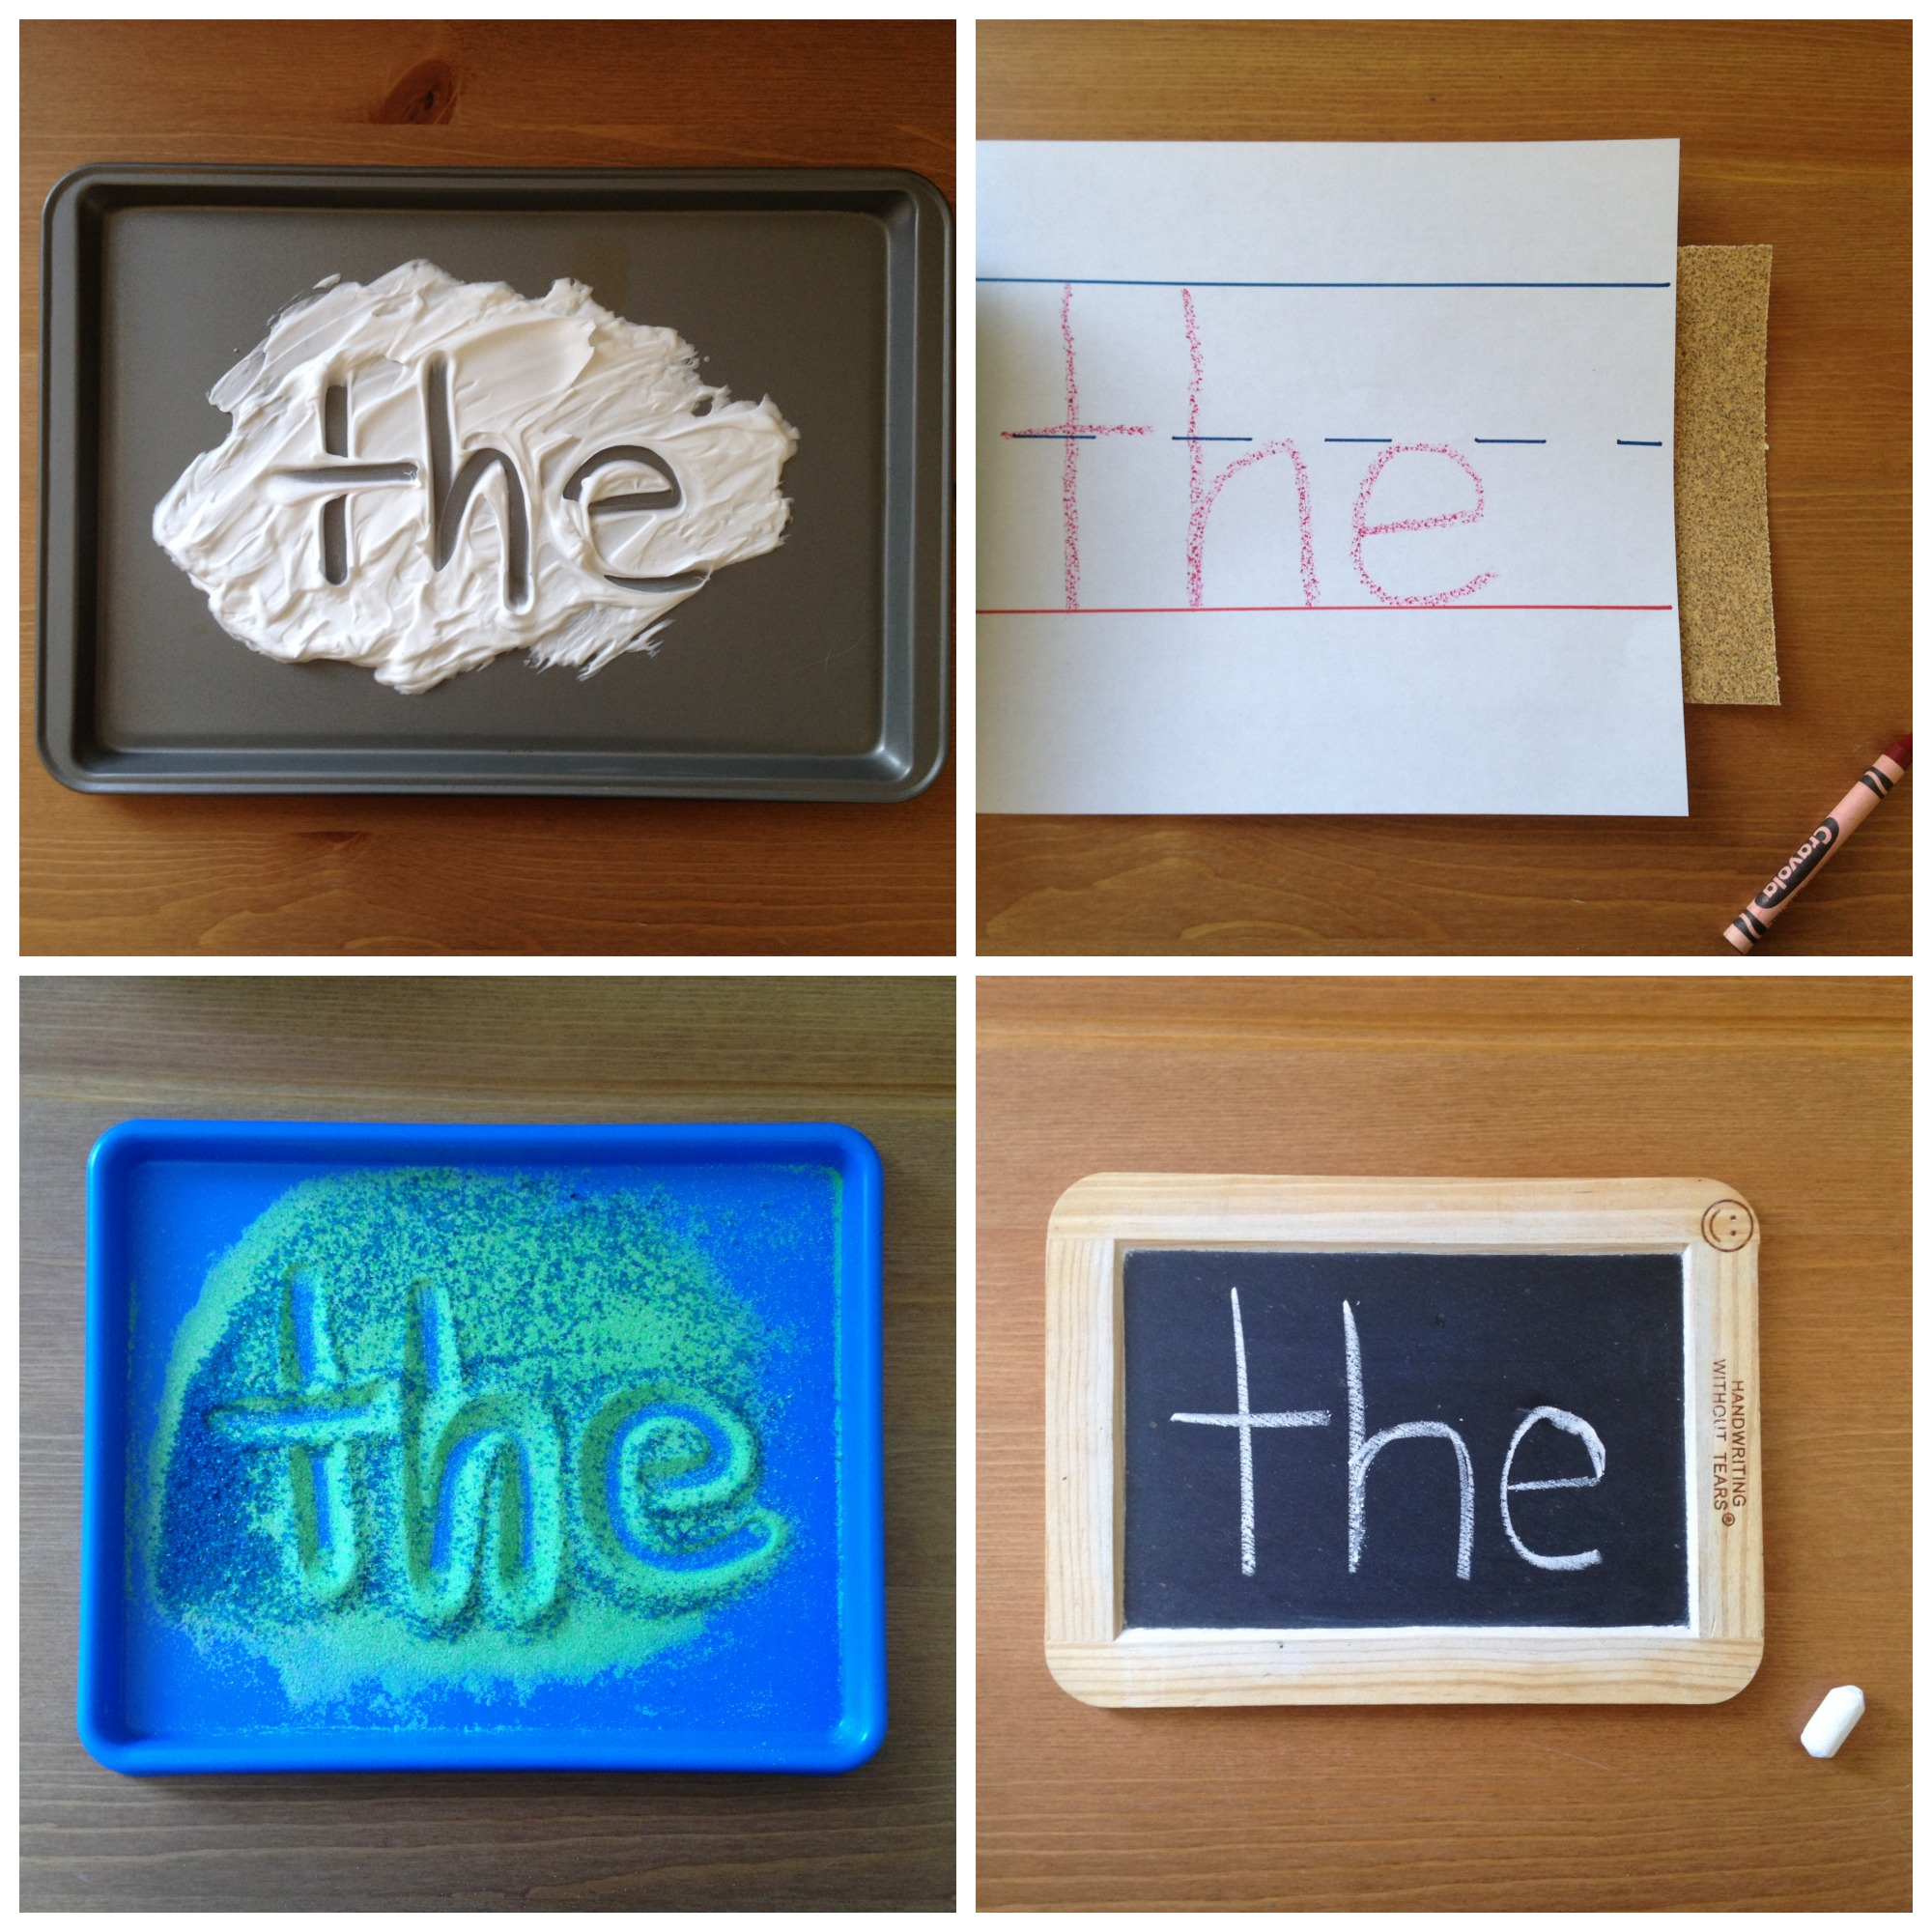 beyond flashcards how to teach sight words creatively